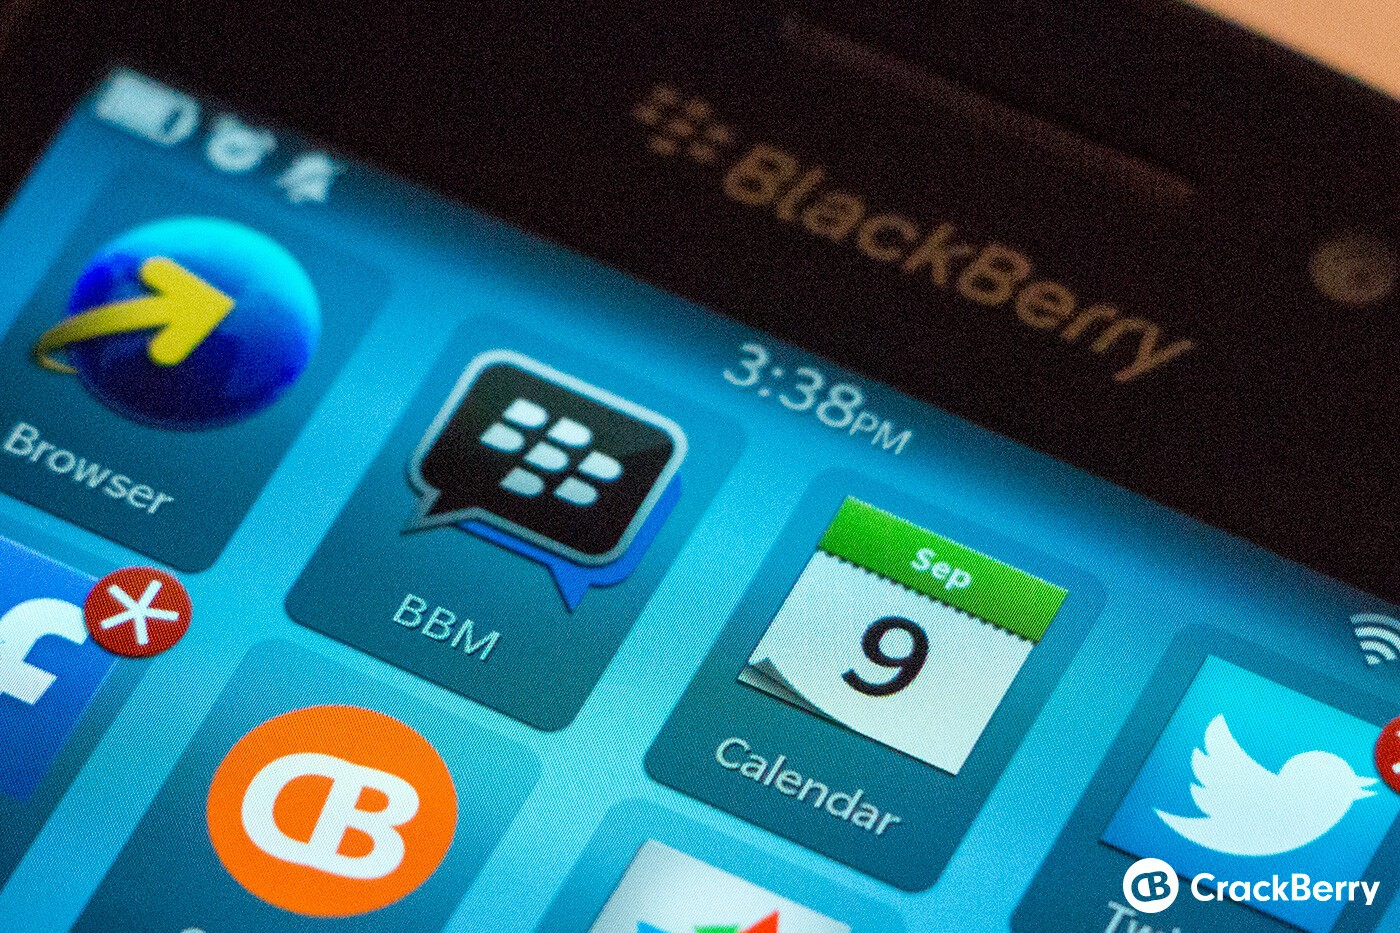 Can BBM be worth $5 per share to BlackBerry's valuation